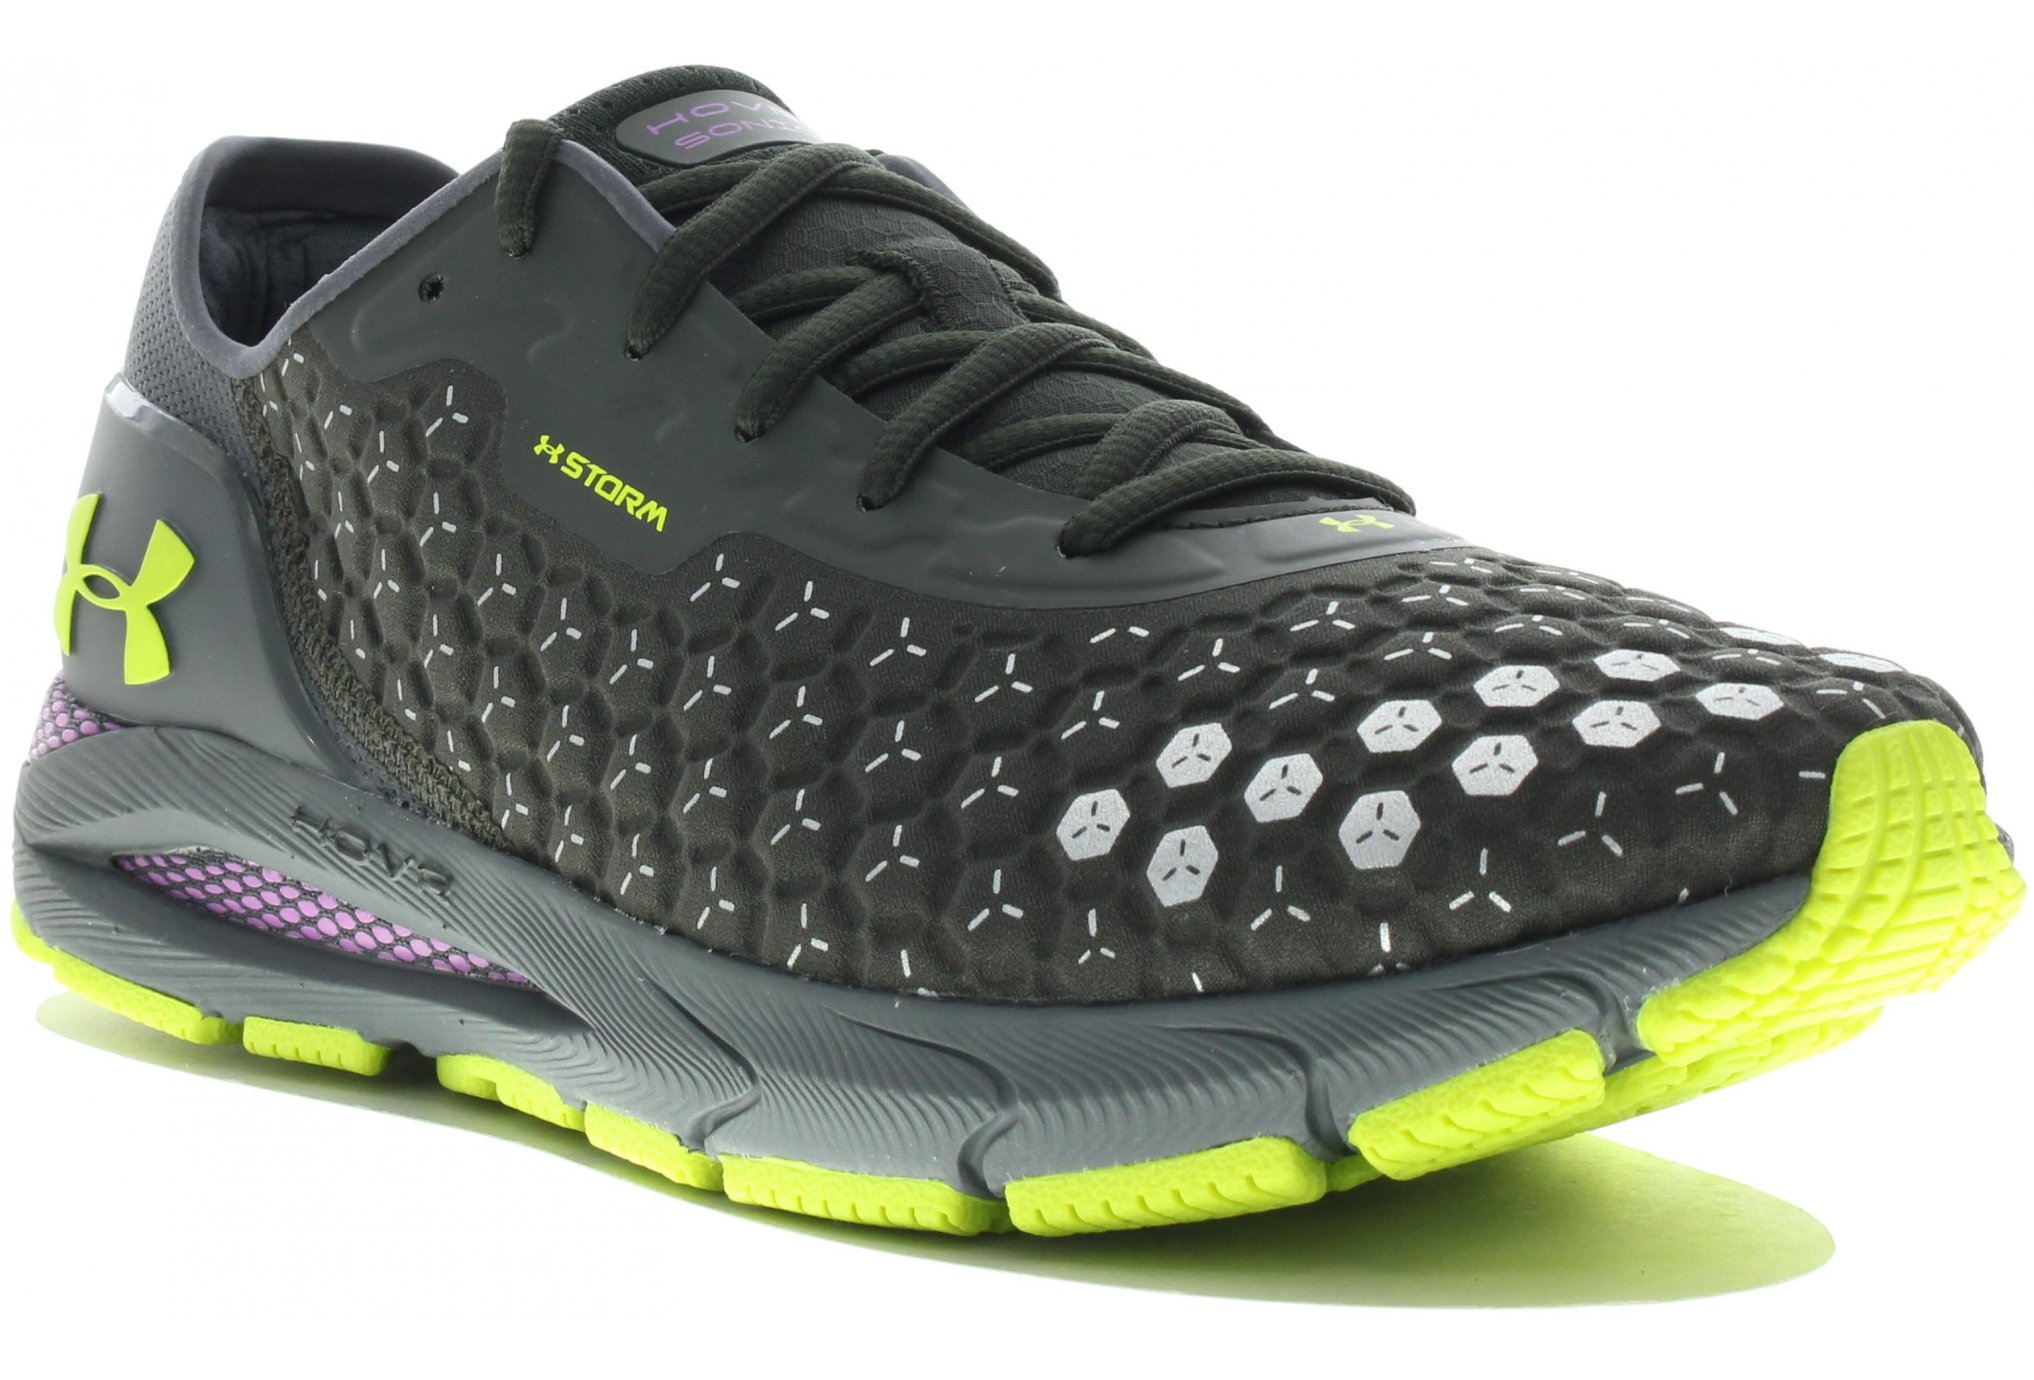 Under Armour HOVR Sonic 3 Storm Chaussures running femme